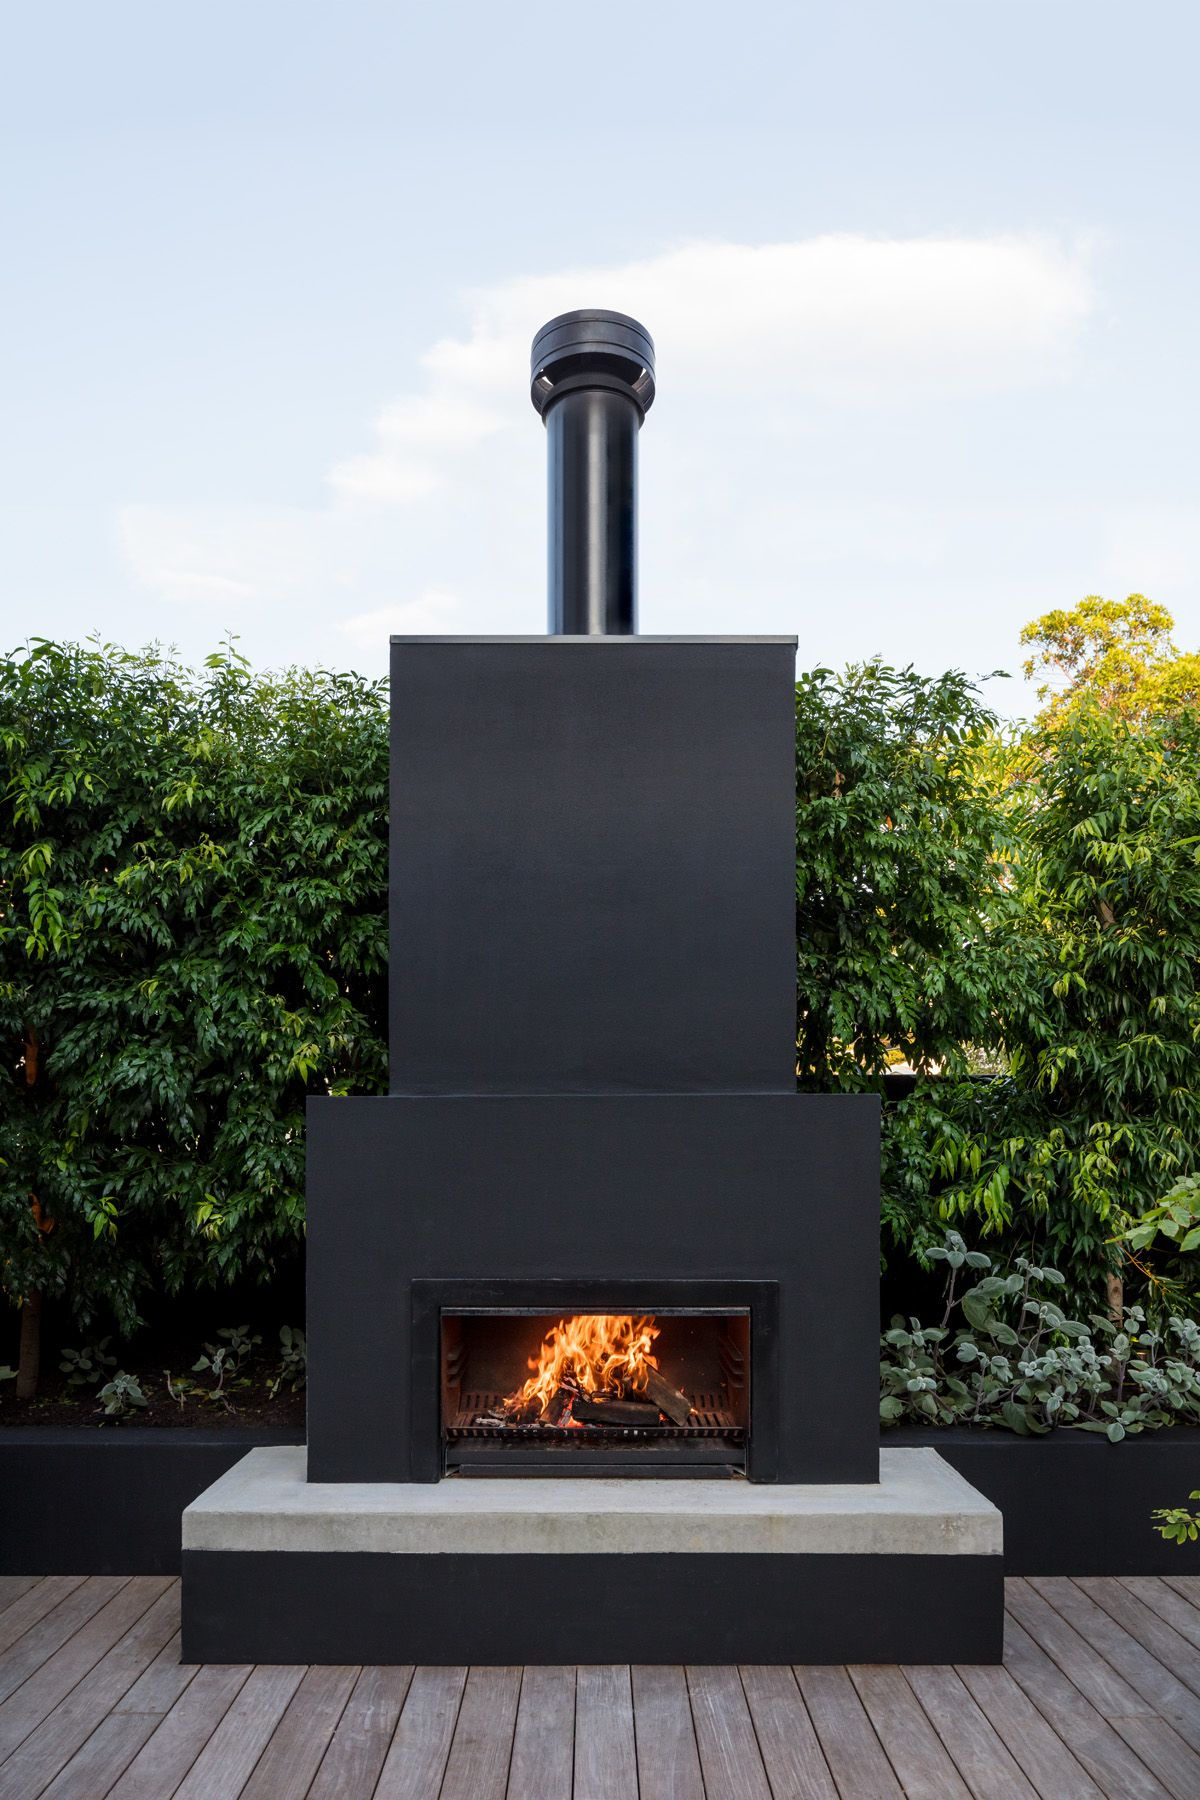 Outdoor Fireplace Black This Vaucluse Residential Project Was Designed And Built By Wyer Outdoor Fireplace Designs Diy Outdoor Fireplace Backyard Fireplace